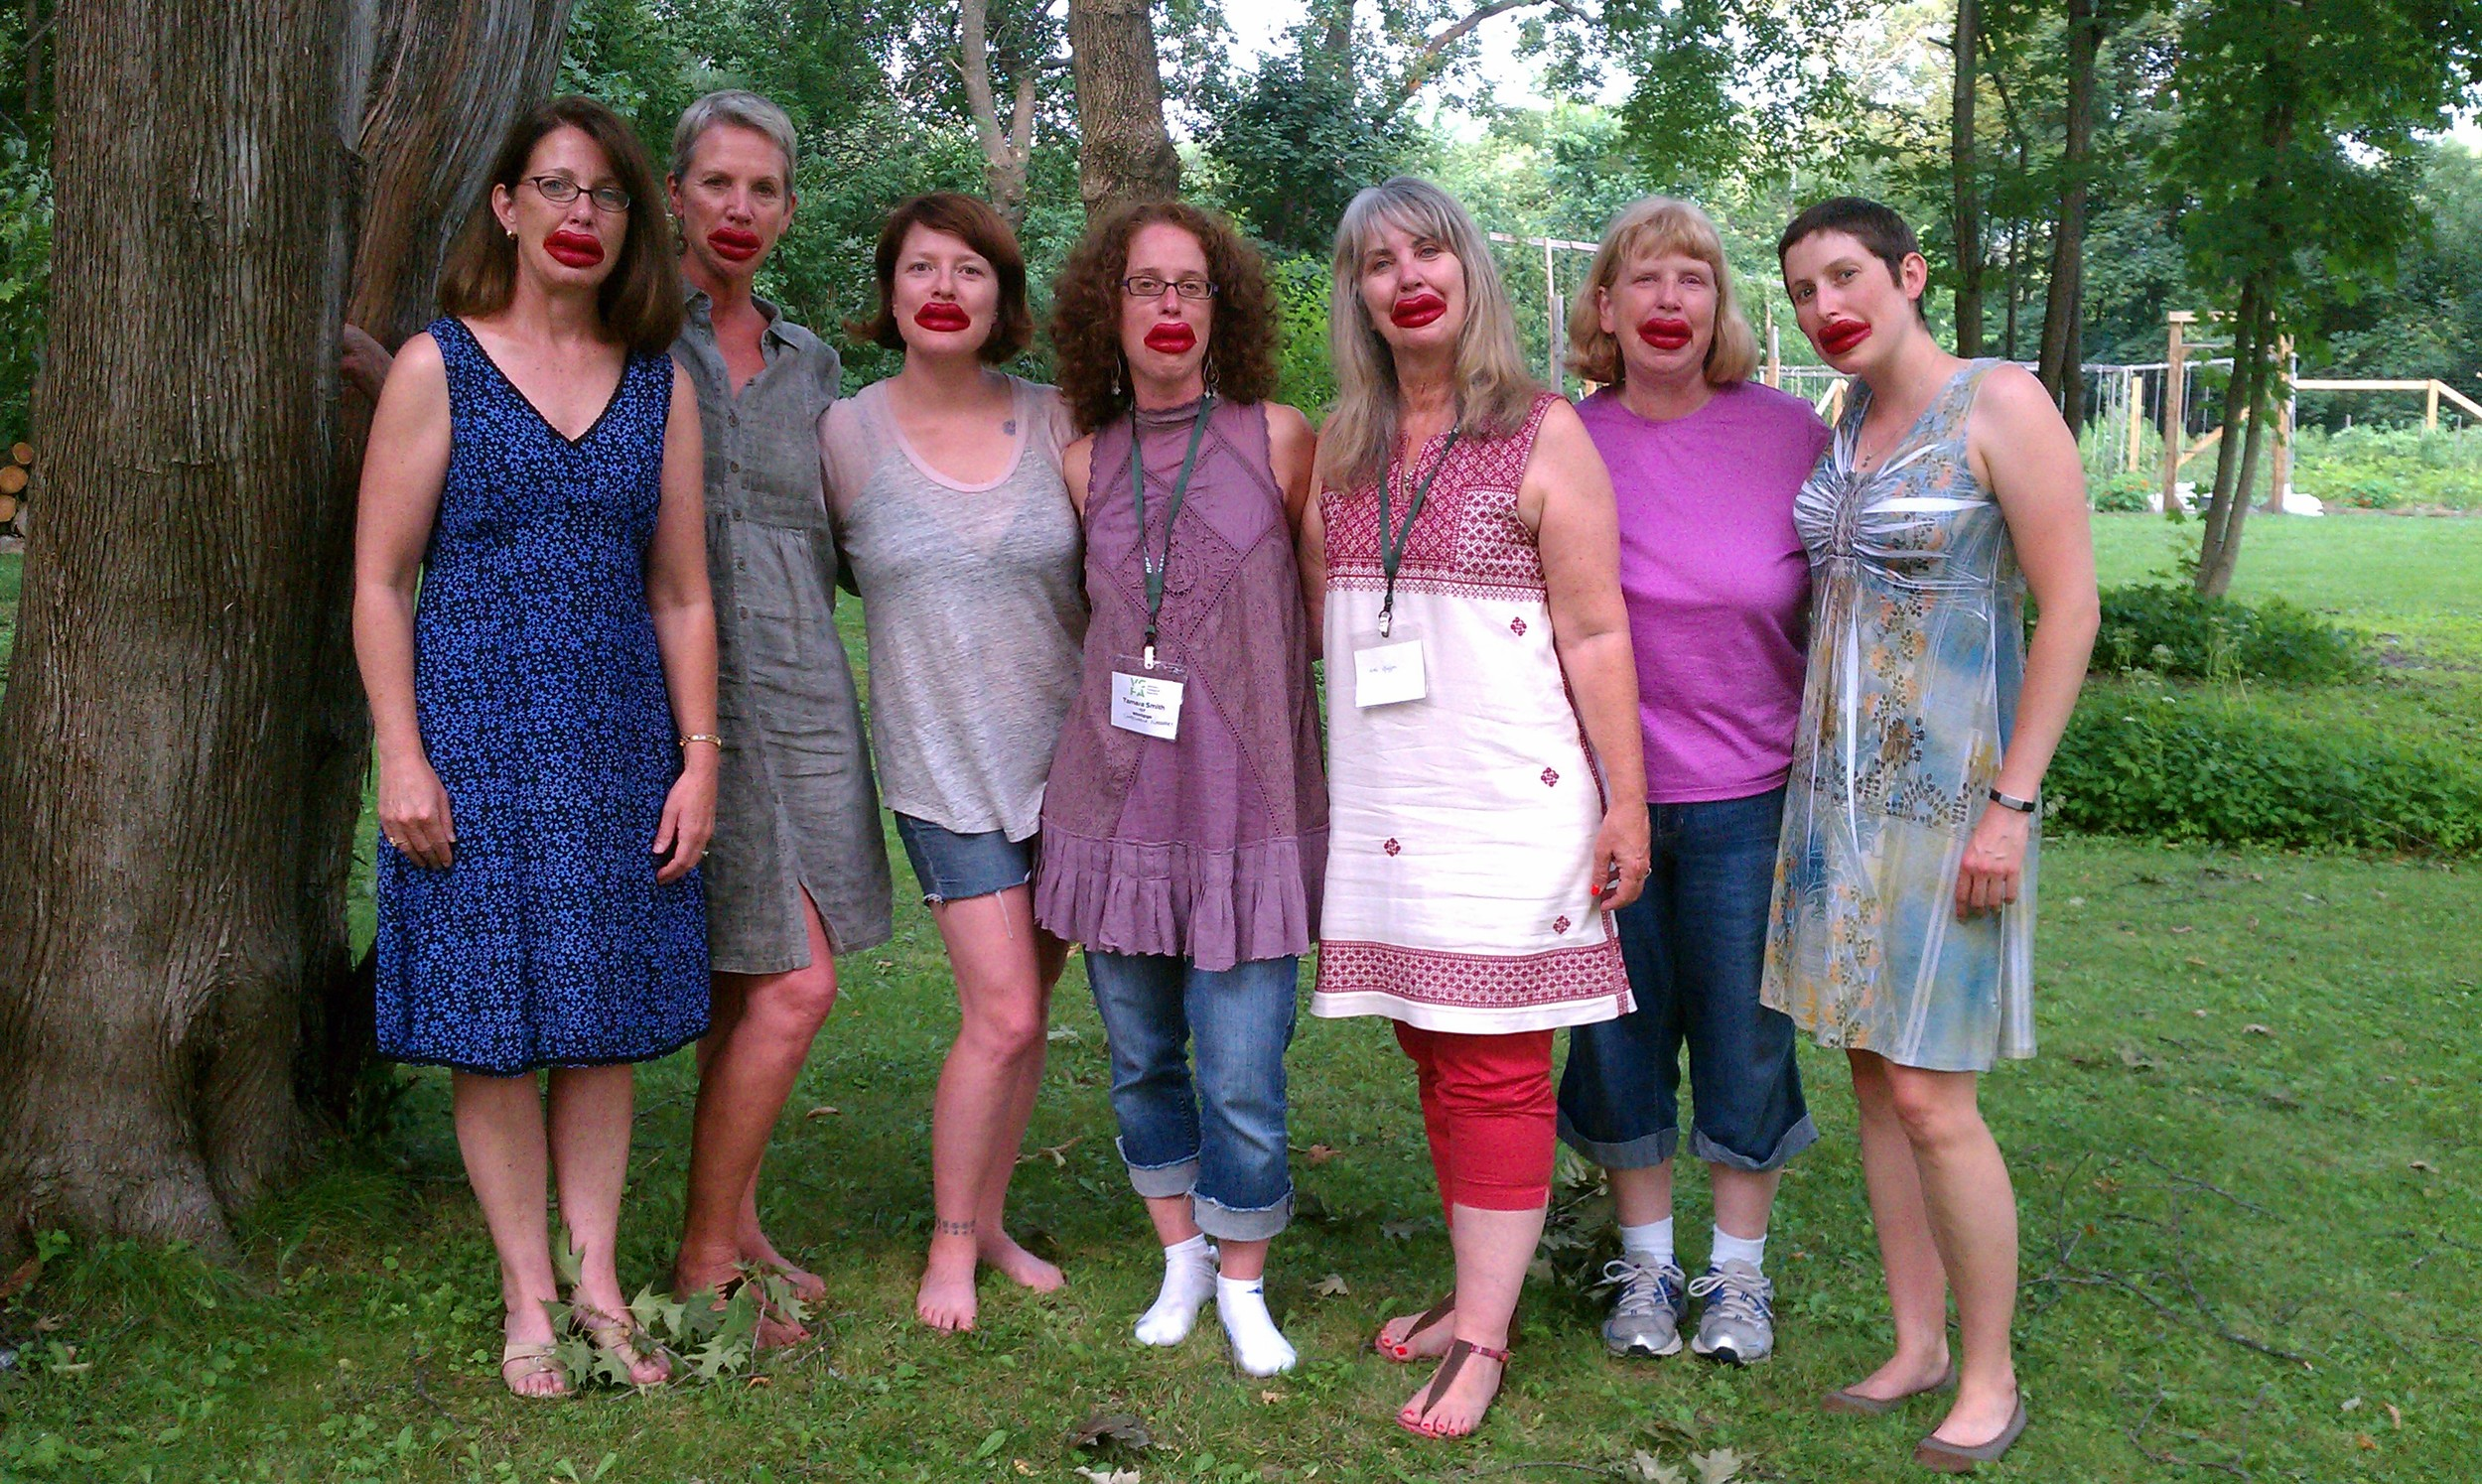 Summer of 2014 Unreliable Narrator retreaters (The rest of the pack missed out on the lips)   L-R: Kerry Castano, me, Katie Mather, Tam Smith, Cynthia Granberg, Cindy Faughnan, Trinity Peacock-Broyles